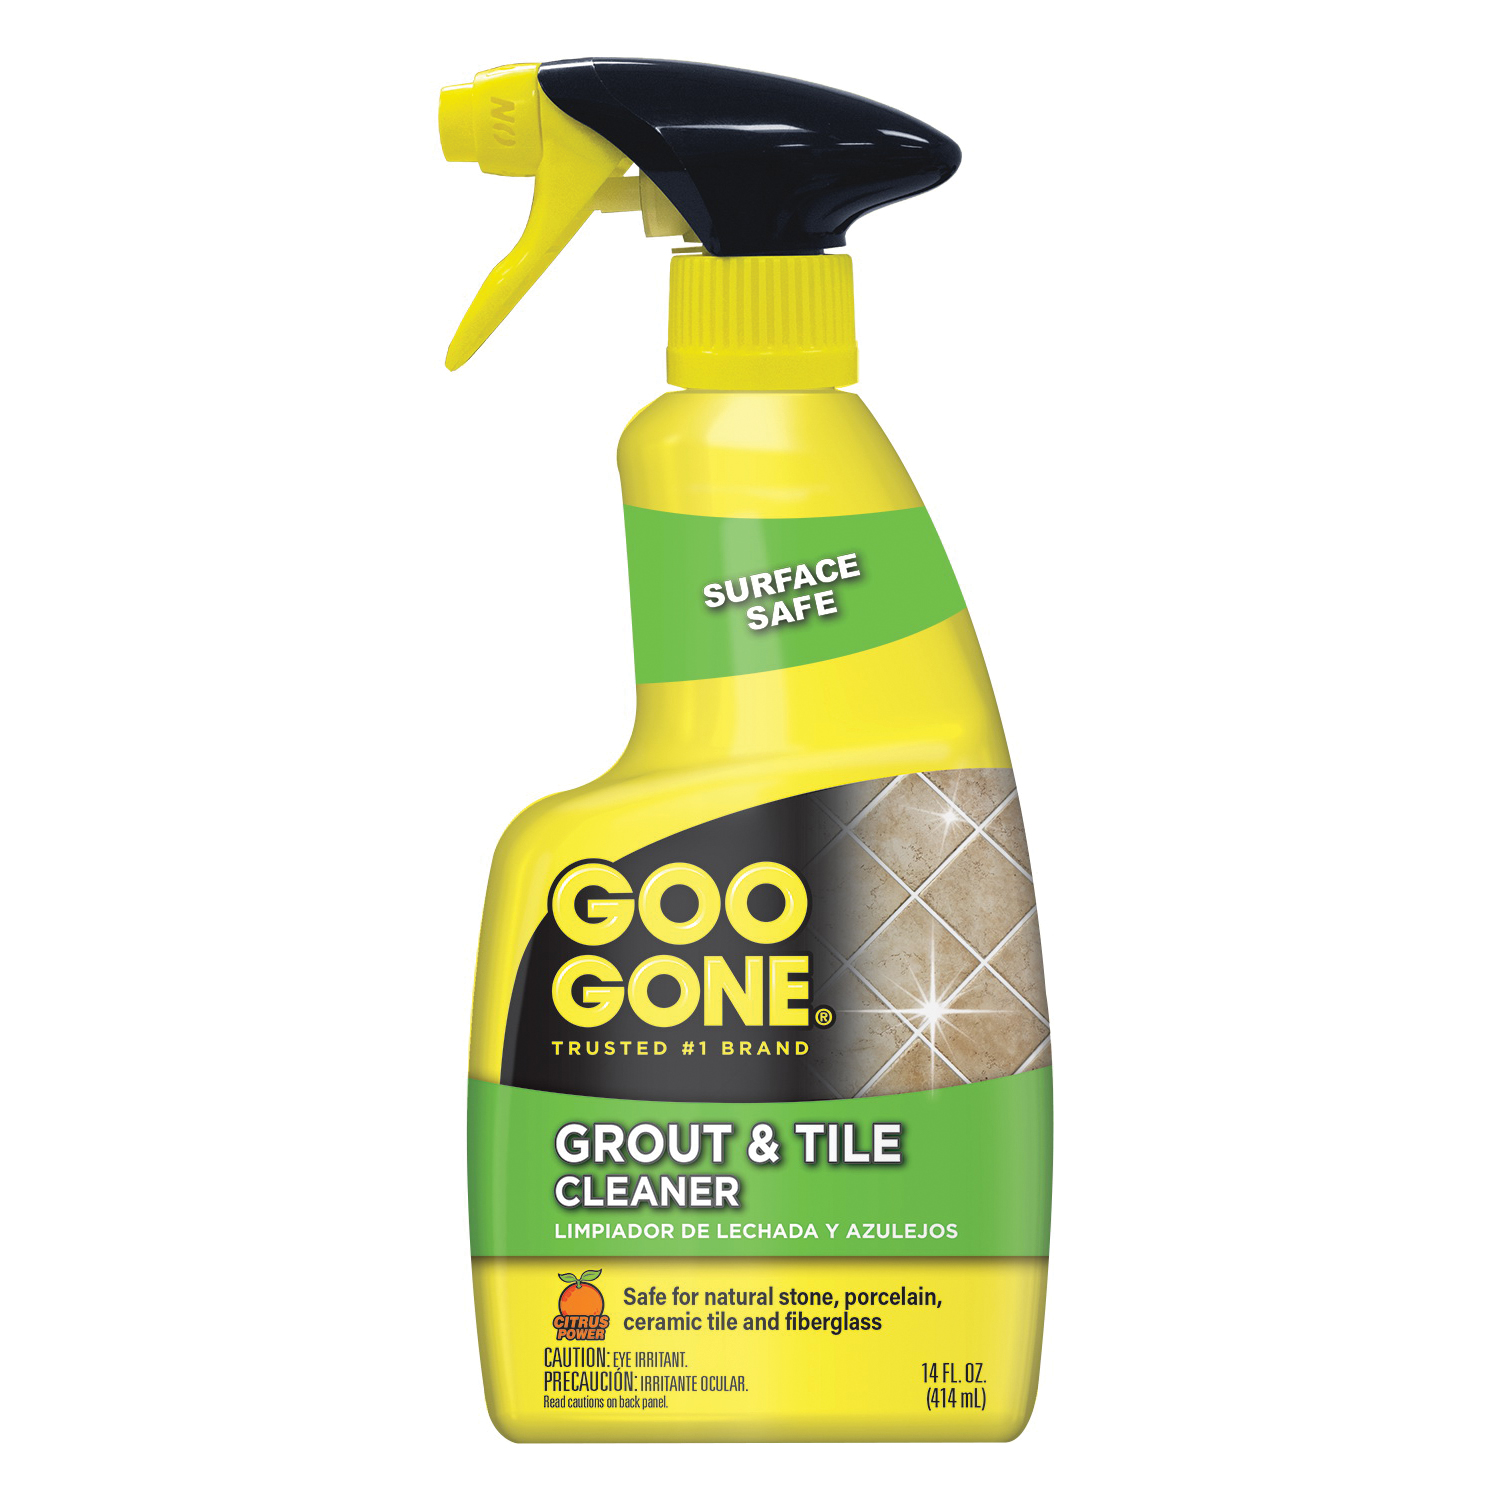 Picture of Goo Gone 2052 Grout and Tile Cleaner, 14 oz Package, Bottle, Liquid, Citrus, Clear